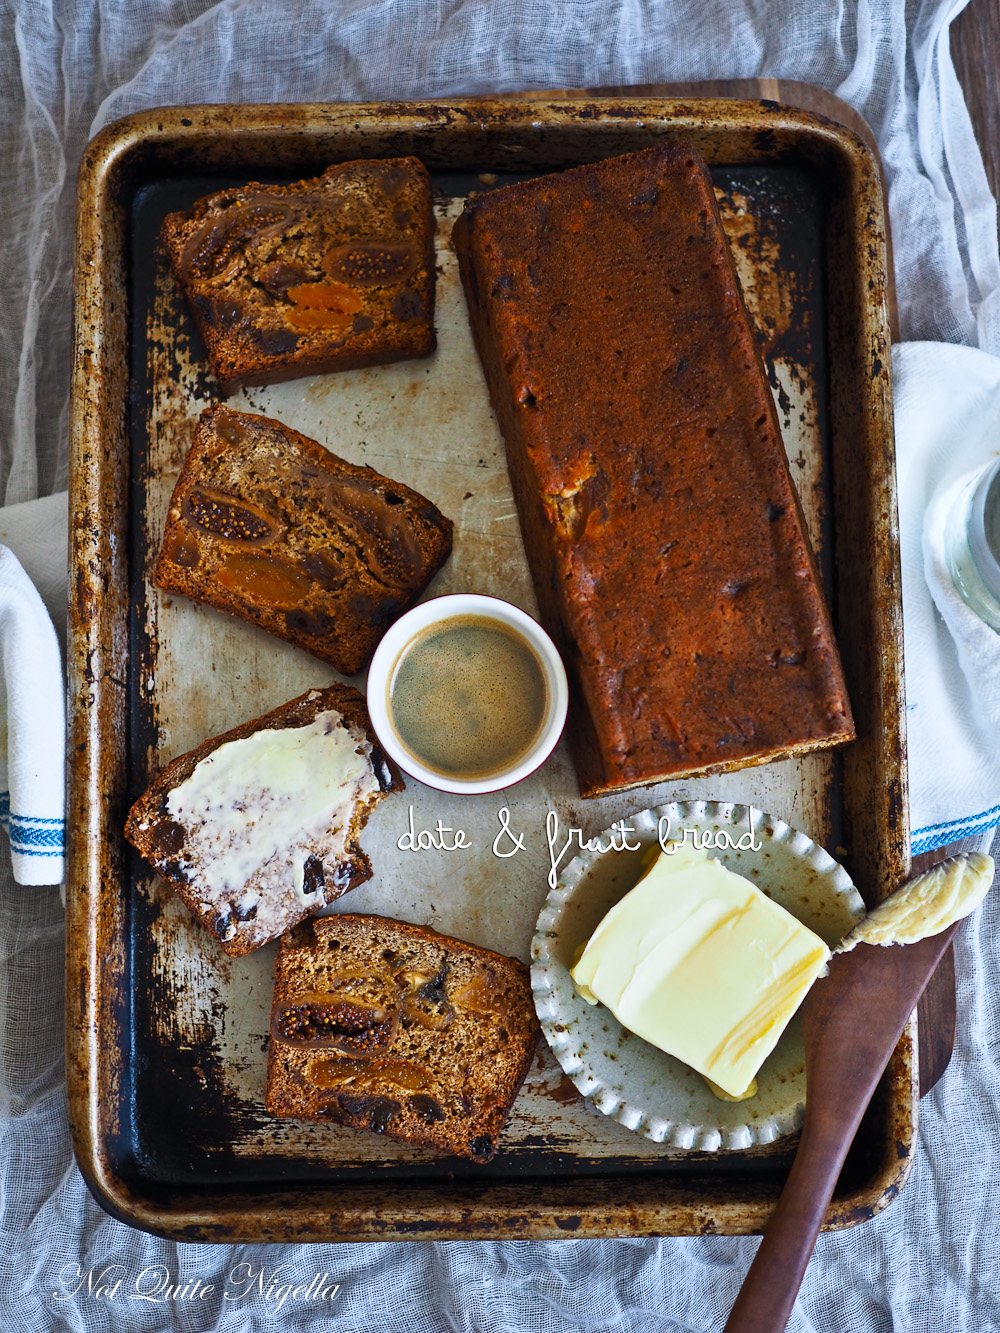 Date and Fruit Bread